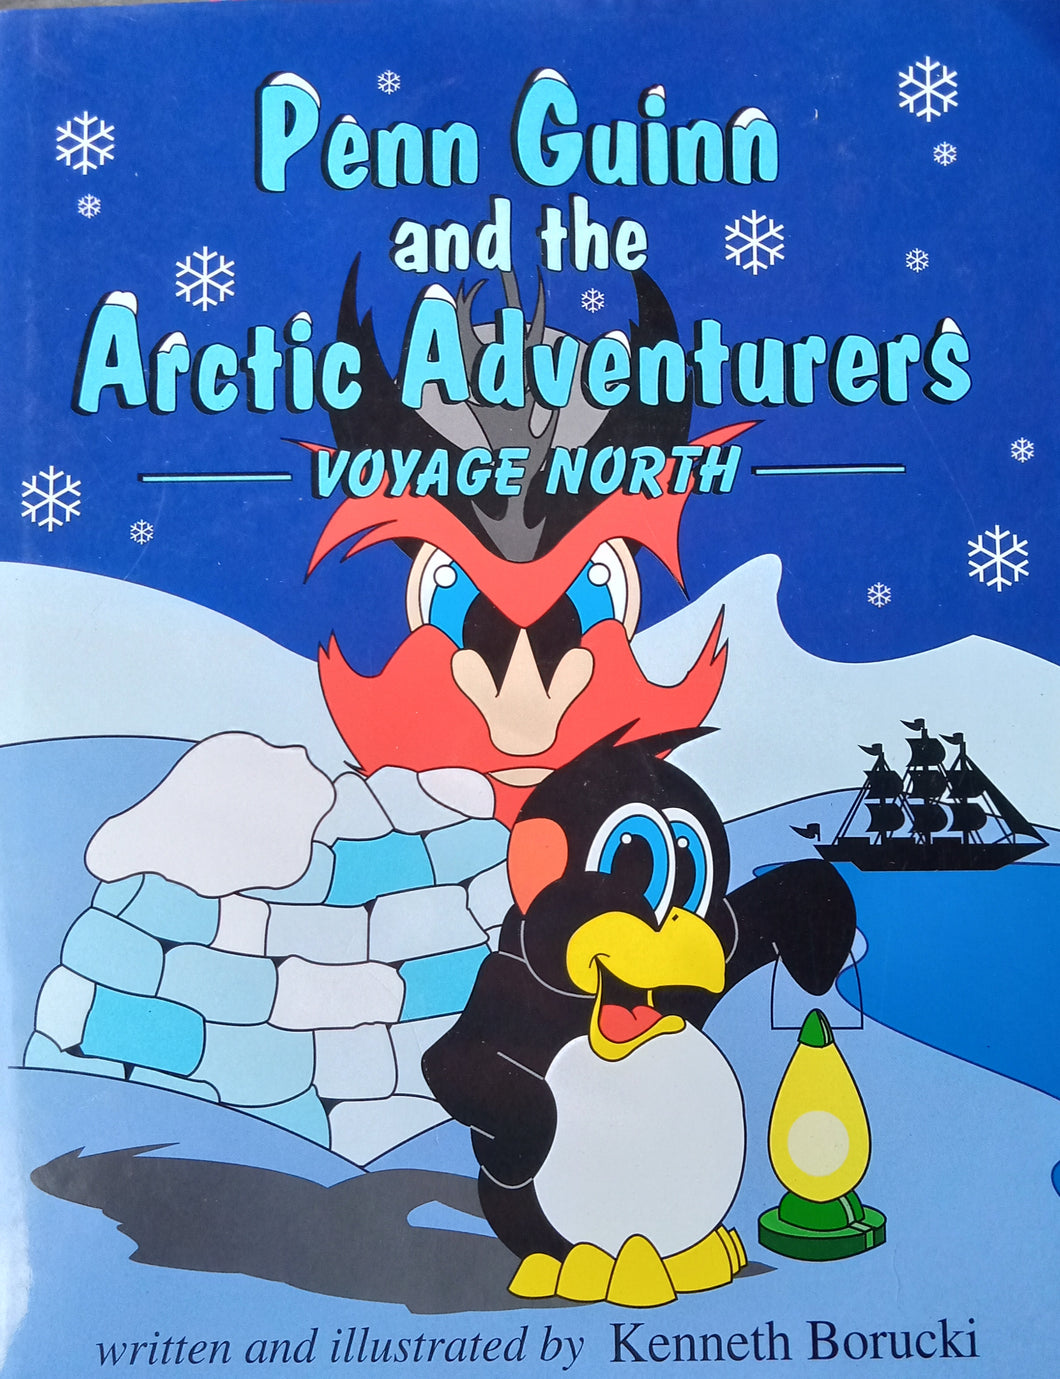 Pen Guinn And The Arctic Adventure by Voyage North